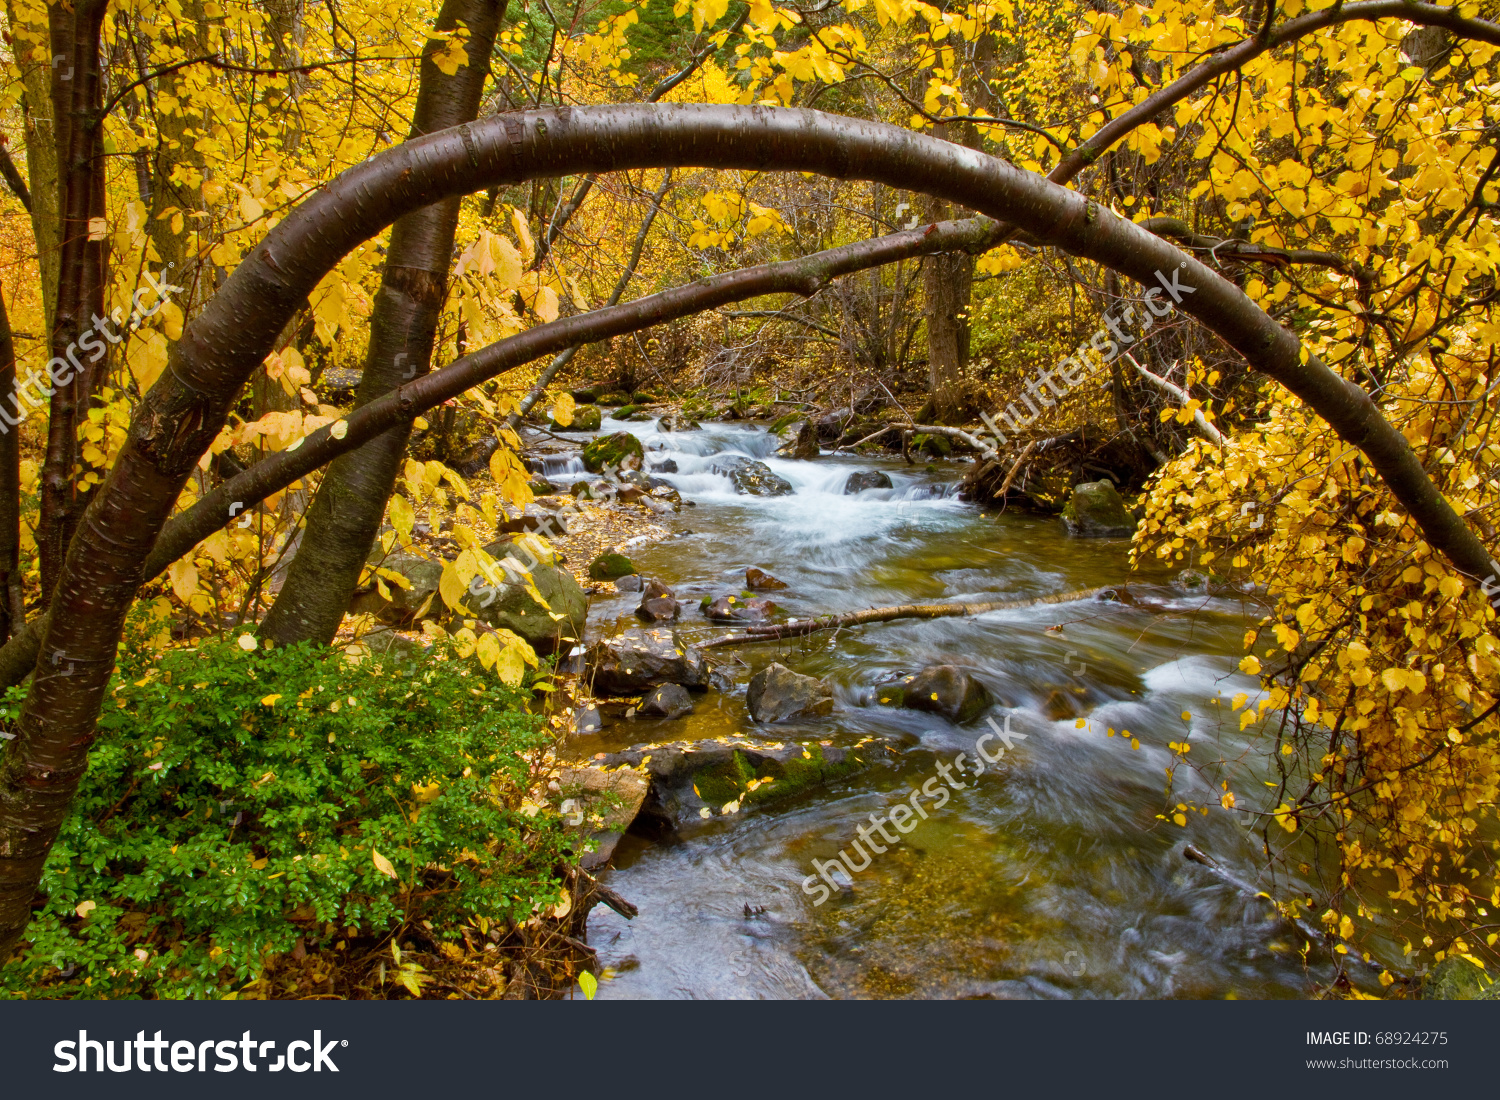 Autumn River Birch Tree Arches Over Stock Photo 68924275.